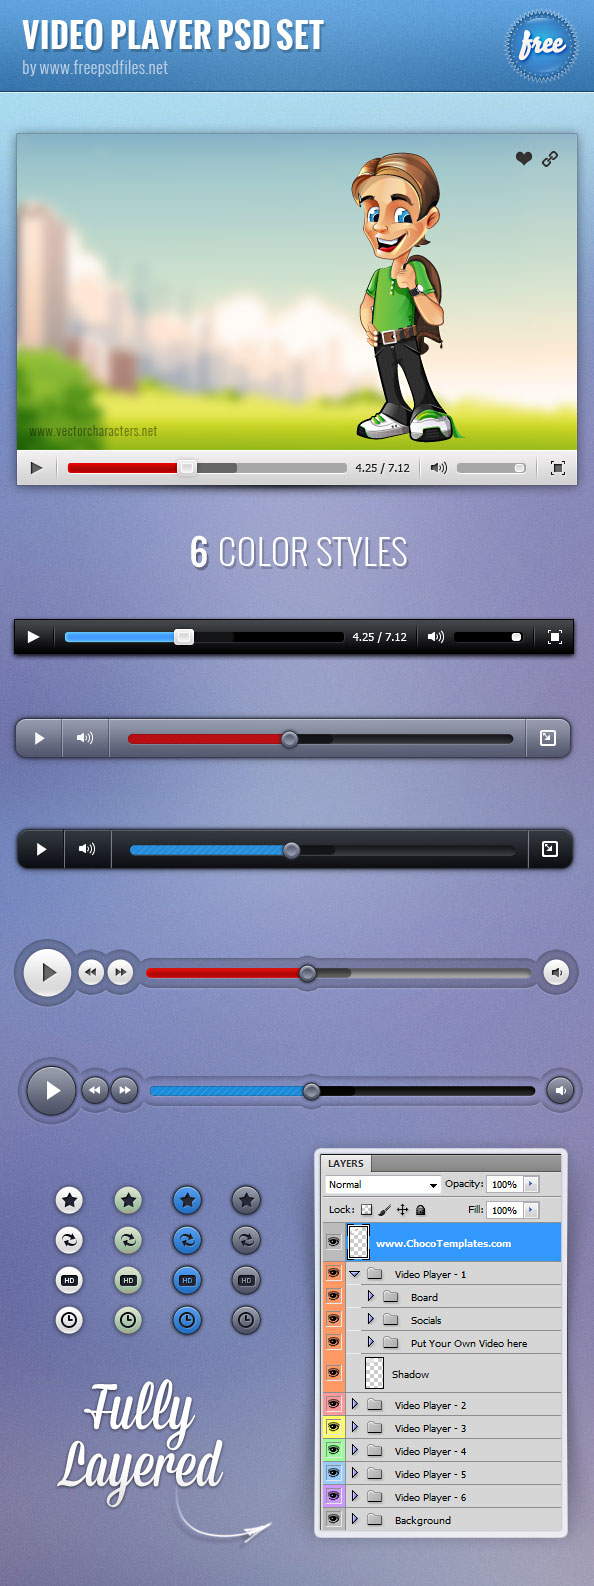 Video Player PSD Set Preview